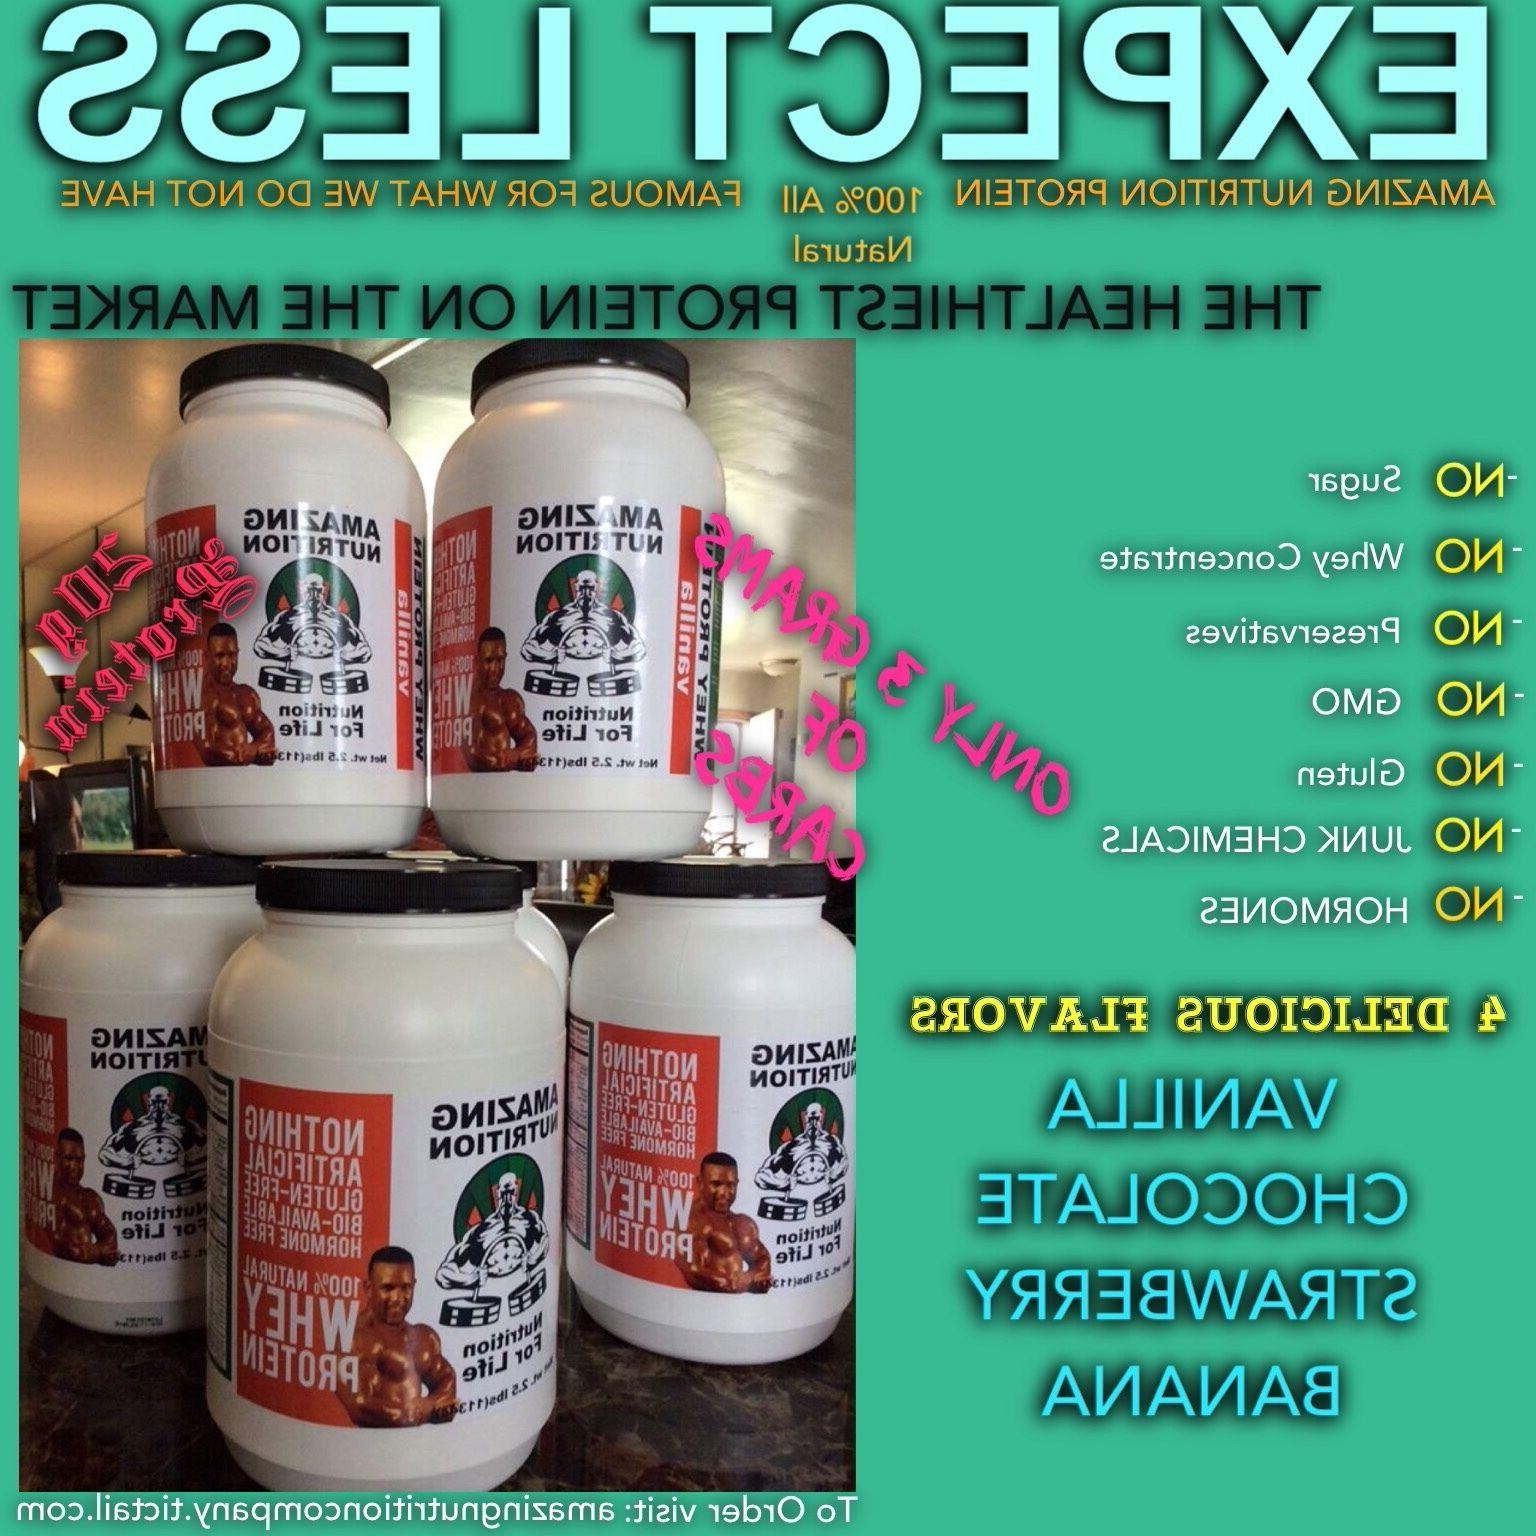 100% Natural Whey Protein Stevia.